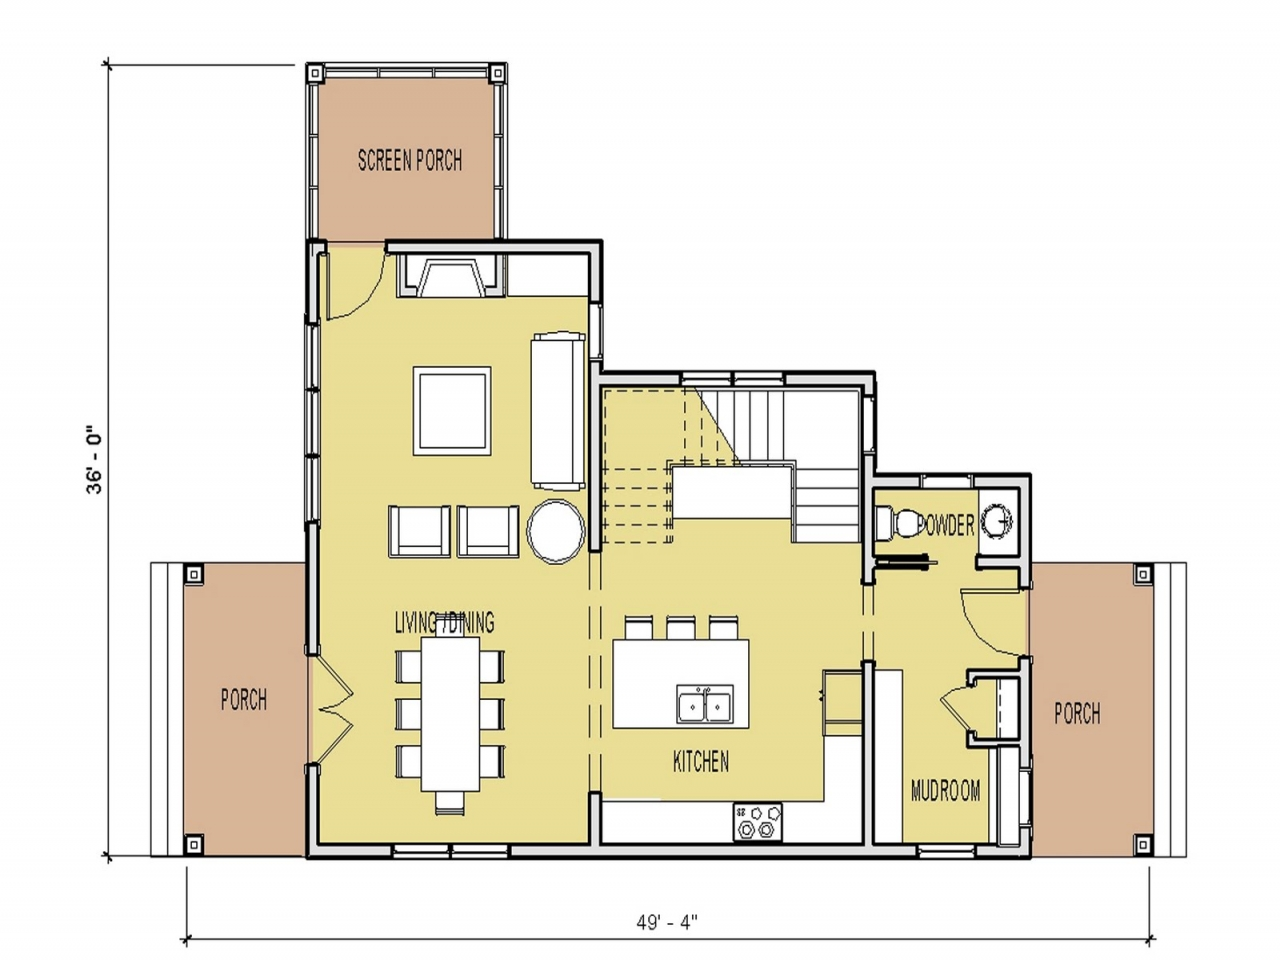 Small house floor plans under 1000 sq ft unique small for 1000 sq ft house plans 3 bedroom